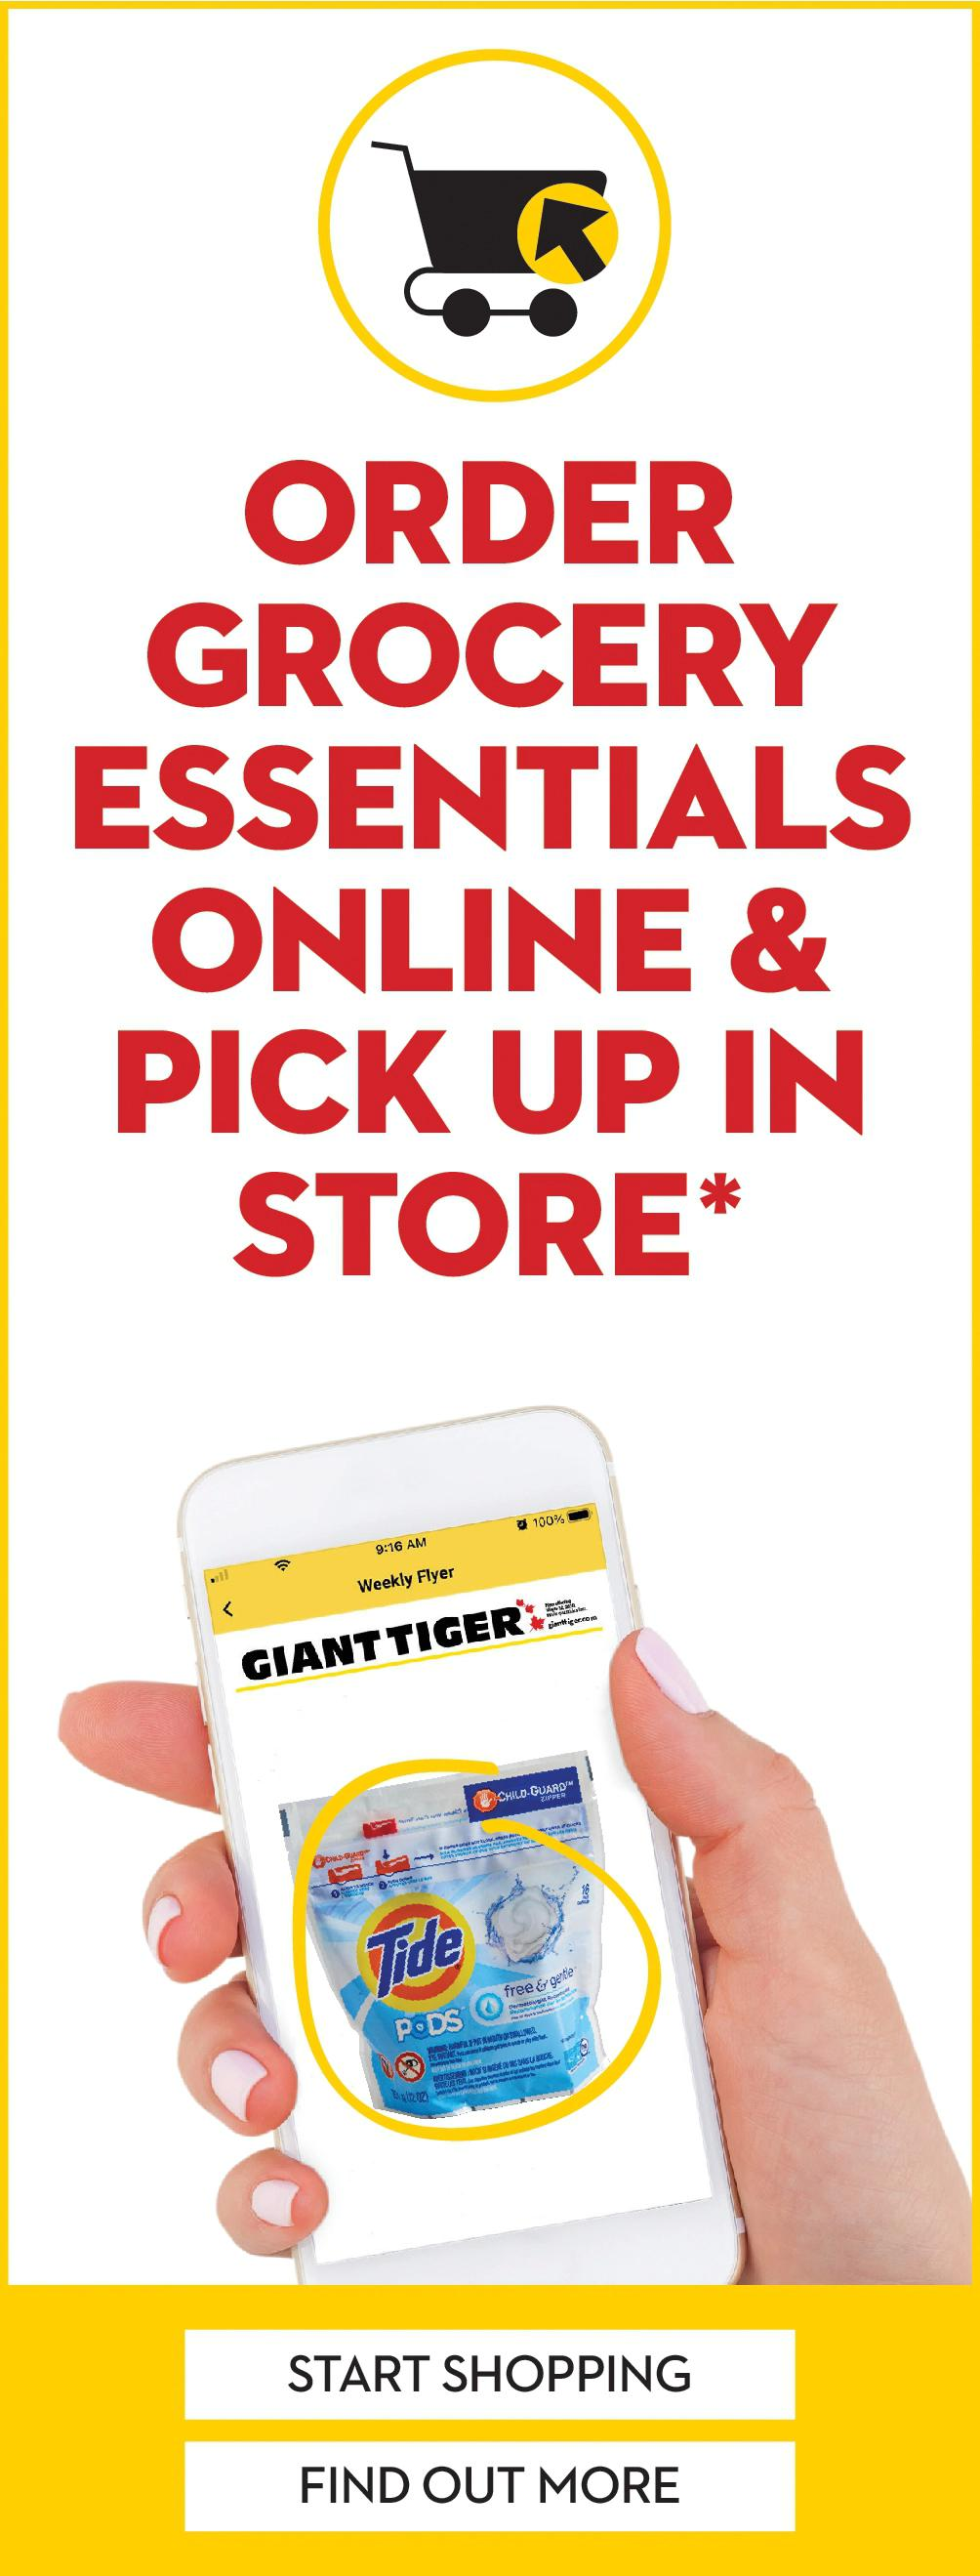 Giant Tiger - Weekly Flyer Specials - Page 7